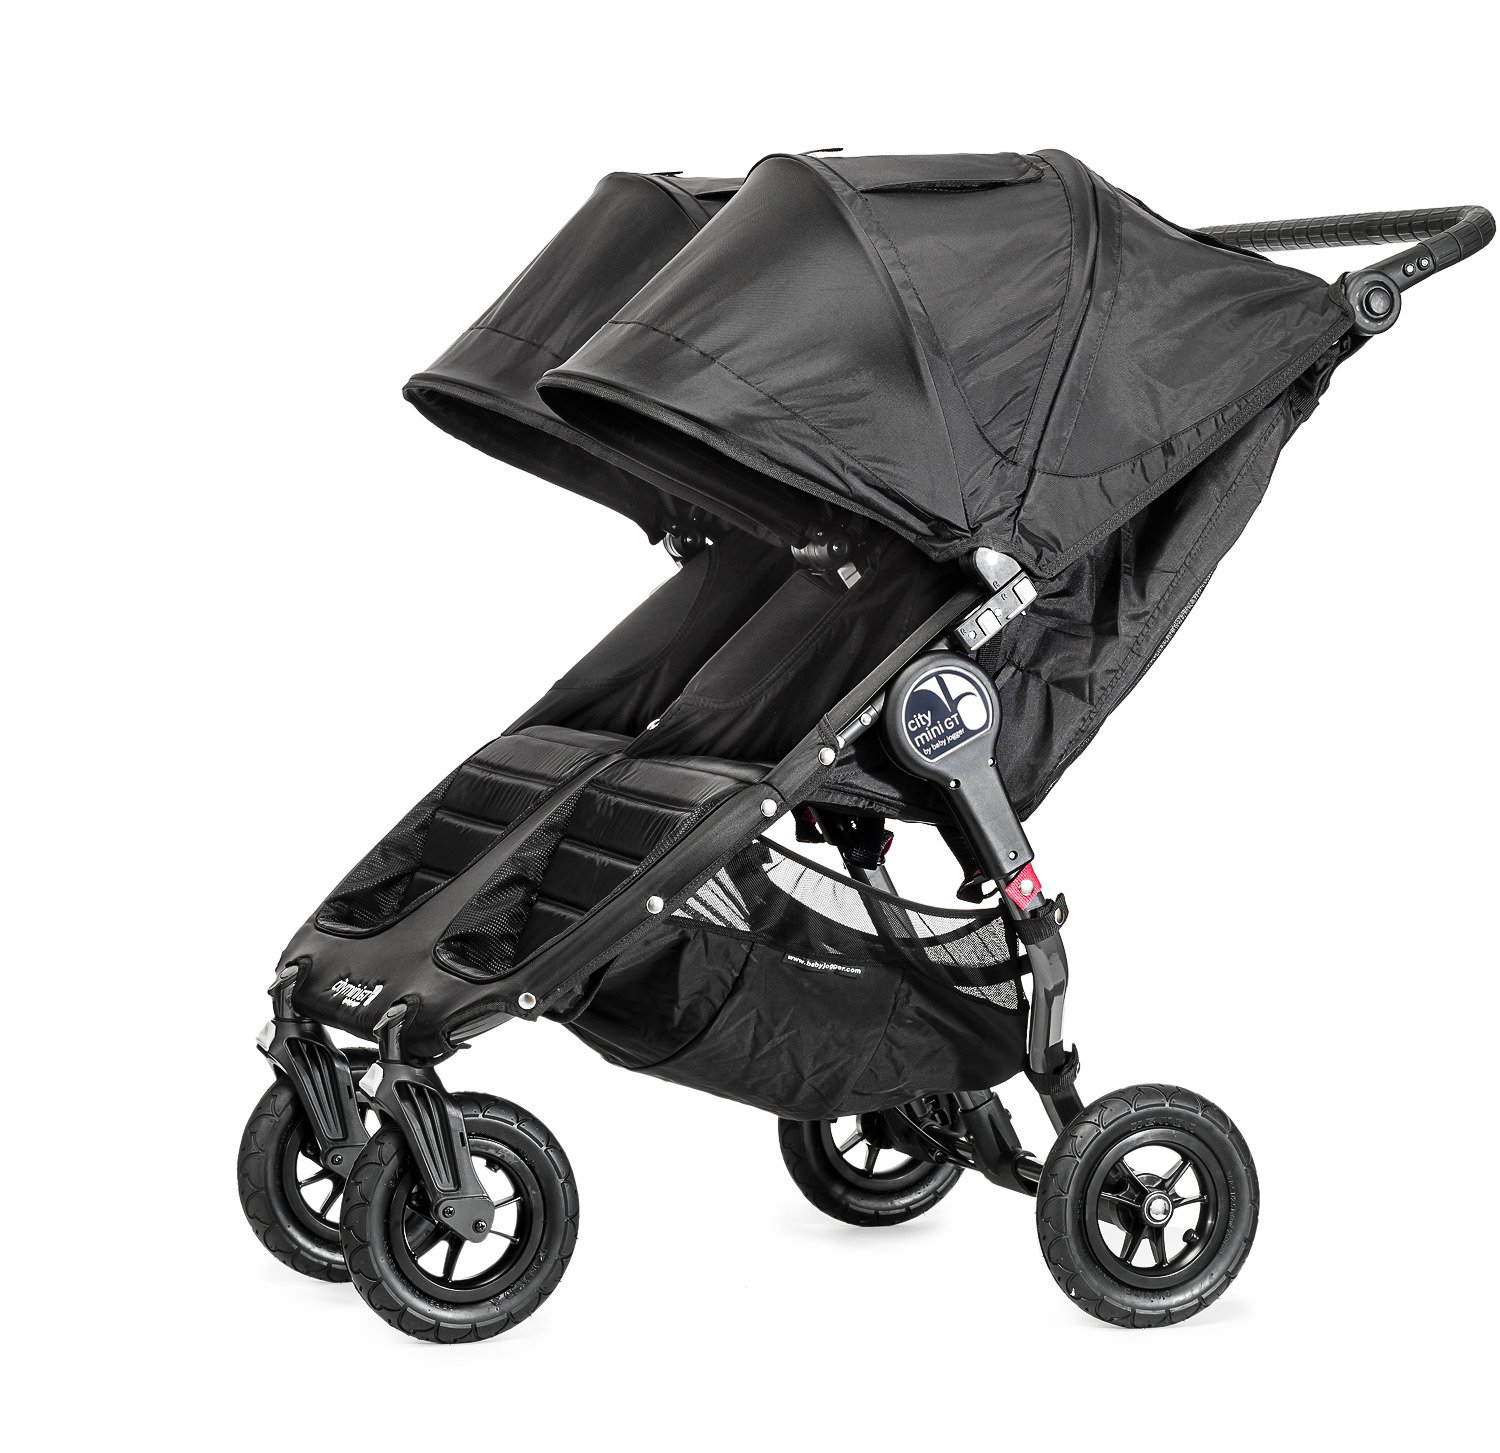 Baby Jogger City Mini GT Double Stroller Black  Taking a little detour is fun, the City Mini GT Double offers all-terrain wheels that let you make your own rules; the all-terrain wheels and front wheel suspension work in unison to give you full control on where and how you go while keeping your little one comfortable Lift the straps and the City Mini GT Double folds itself: Simply and compactly, it really is as easy as it sounds; the auto-lock will lock the pushchair for transportation or storage An adjustable handlebar can accommodate different heights and a hand-operated parking brake keeps all the controls within reach 6